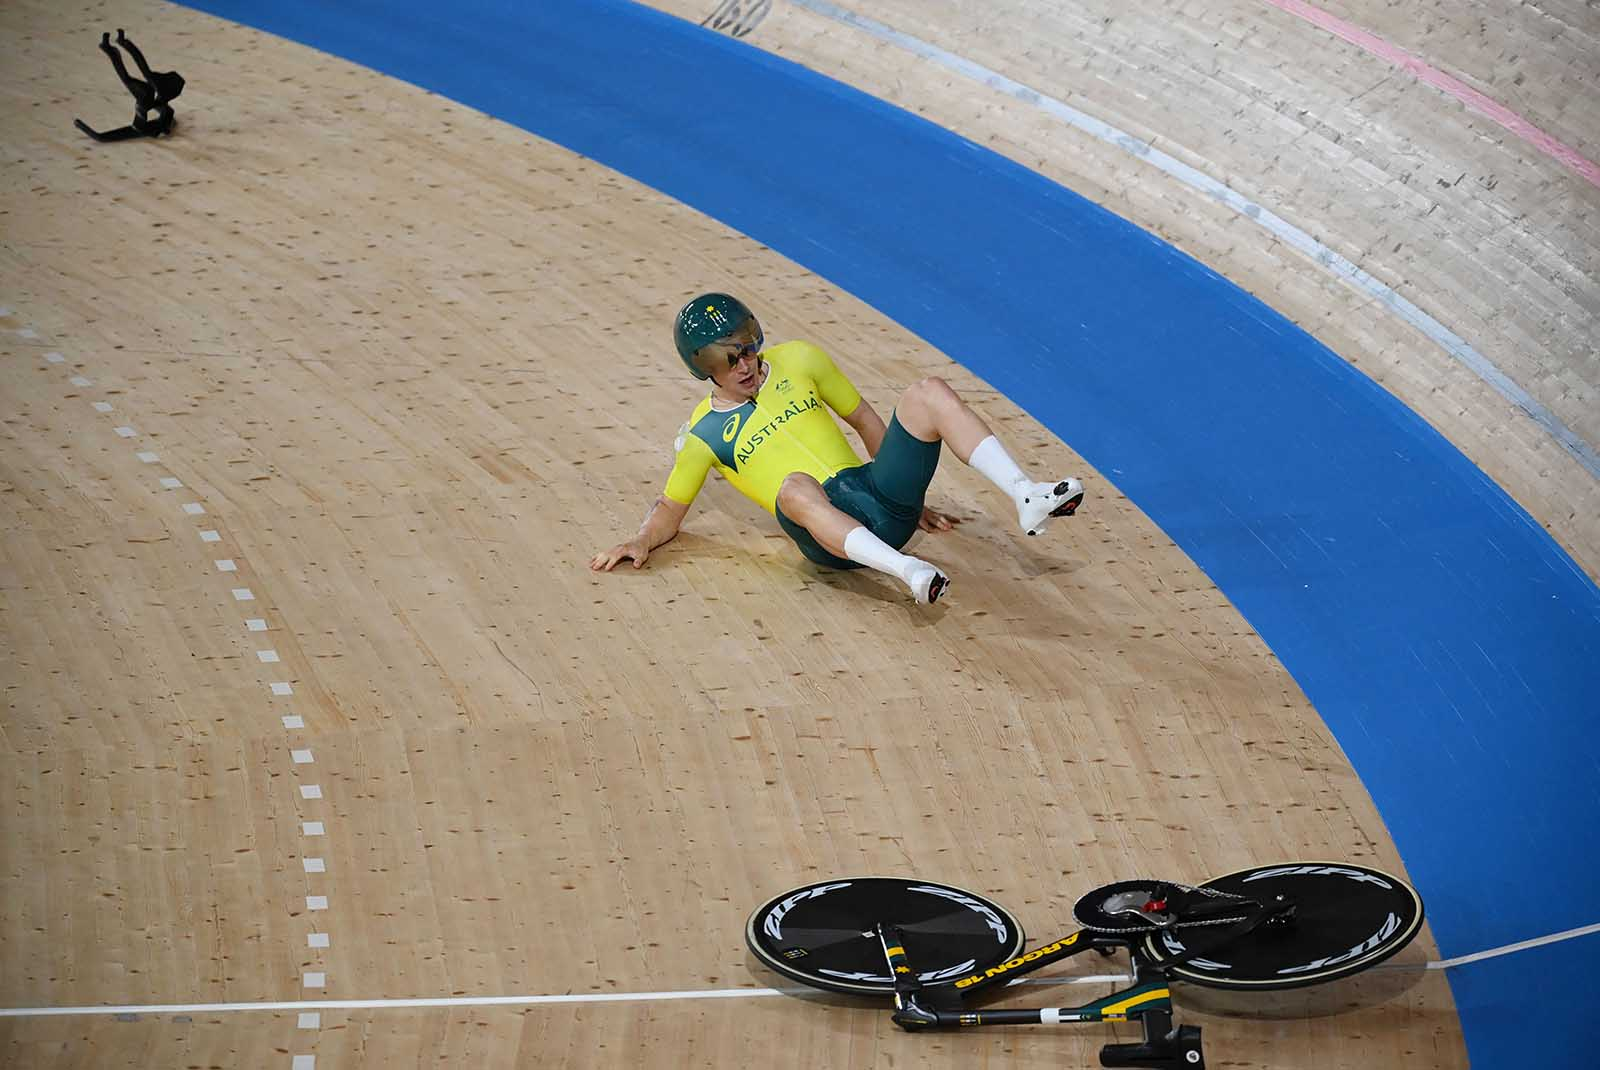 Australia's Alexander Porter reacts after crashing during the men's track cycling team pursuit qualifying event in Izu, Japan, on Monday.